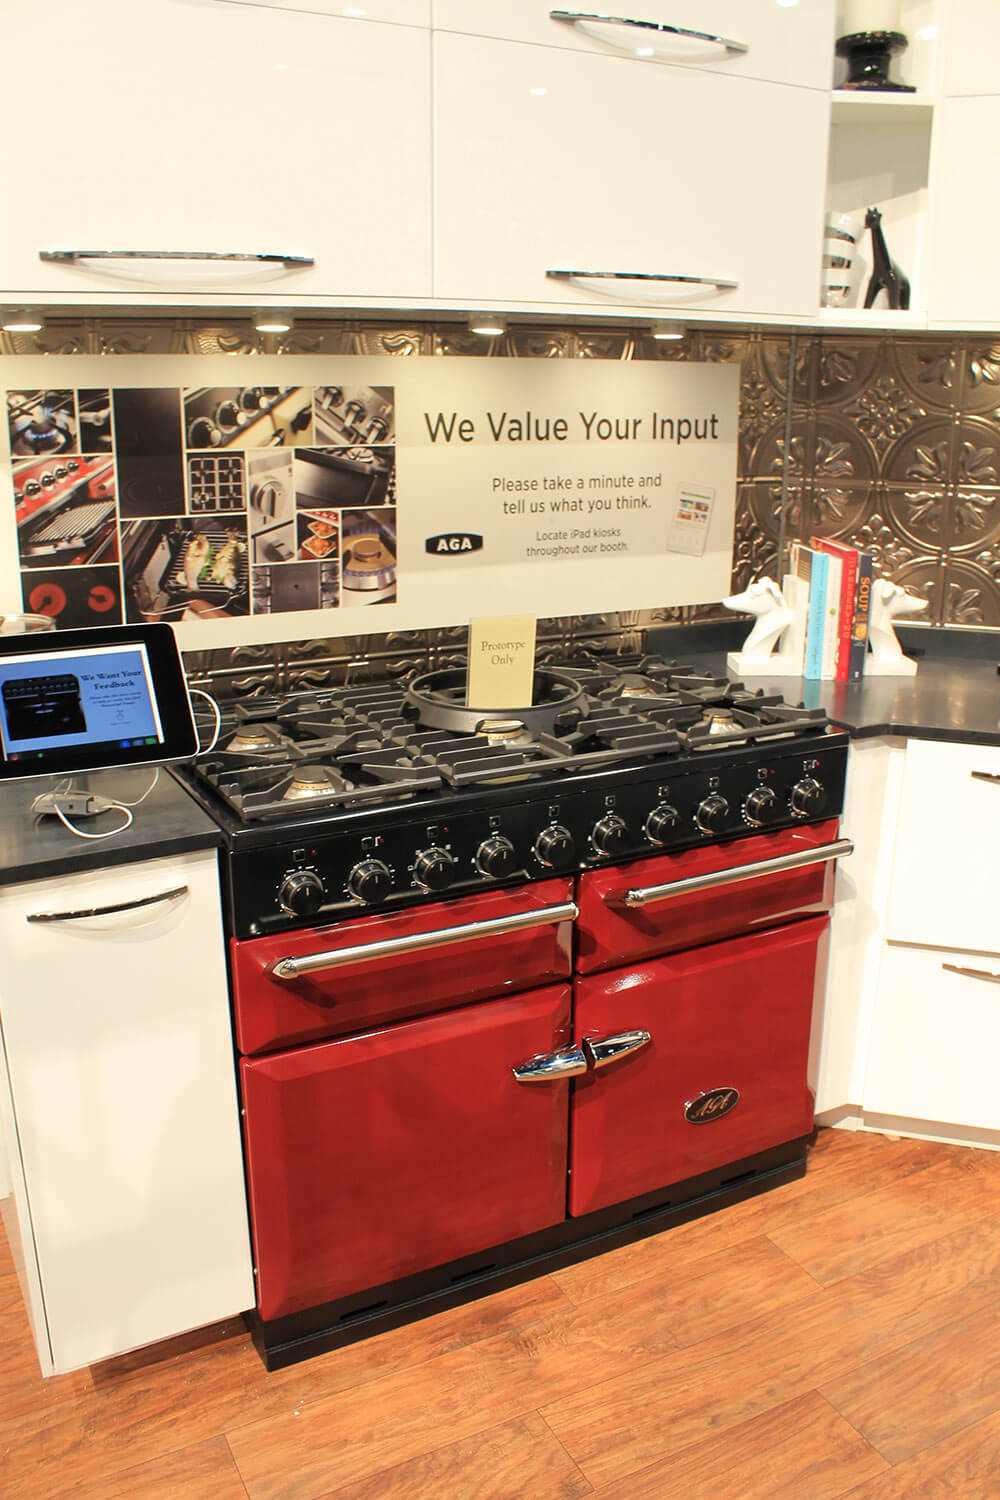 Colorful appliances AGA colorful ranges and a